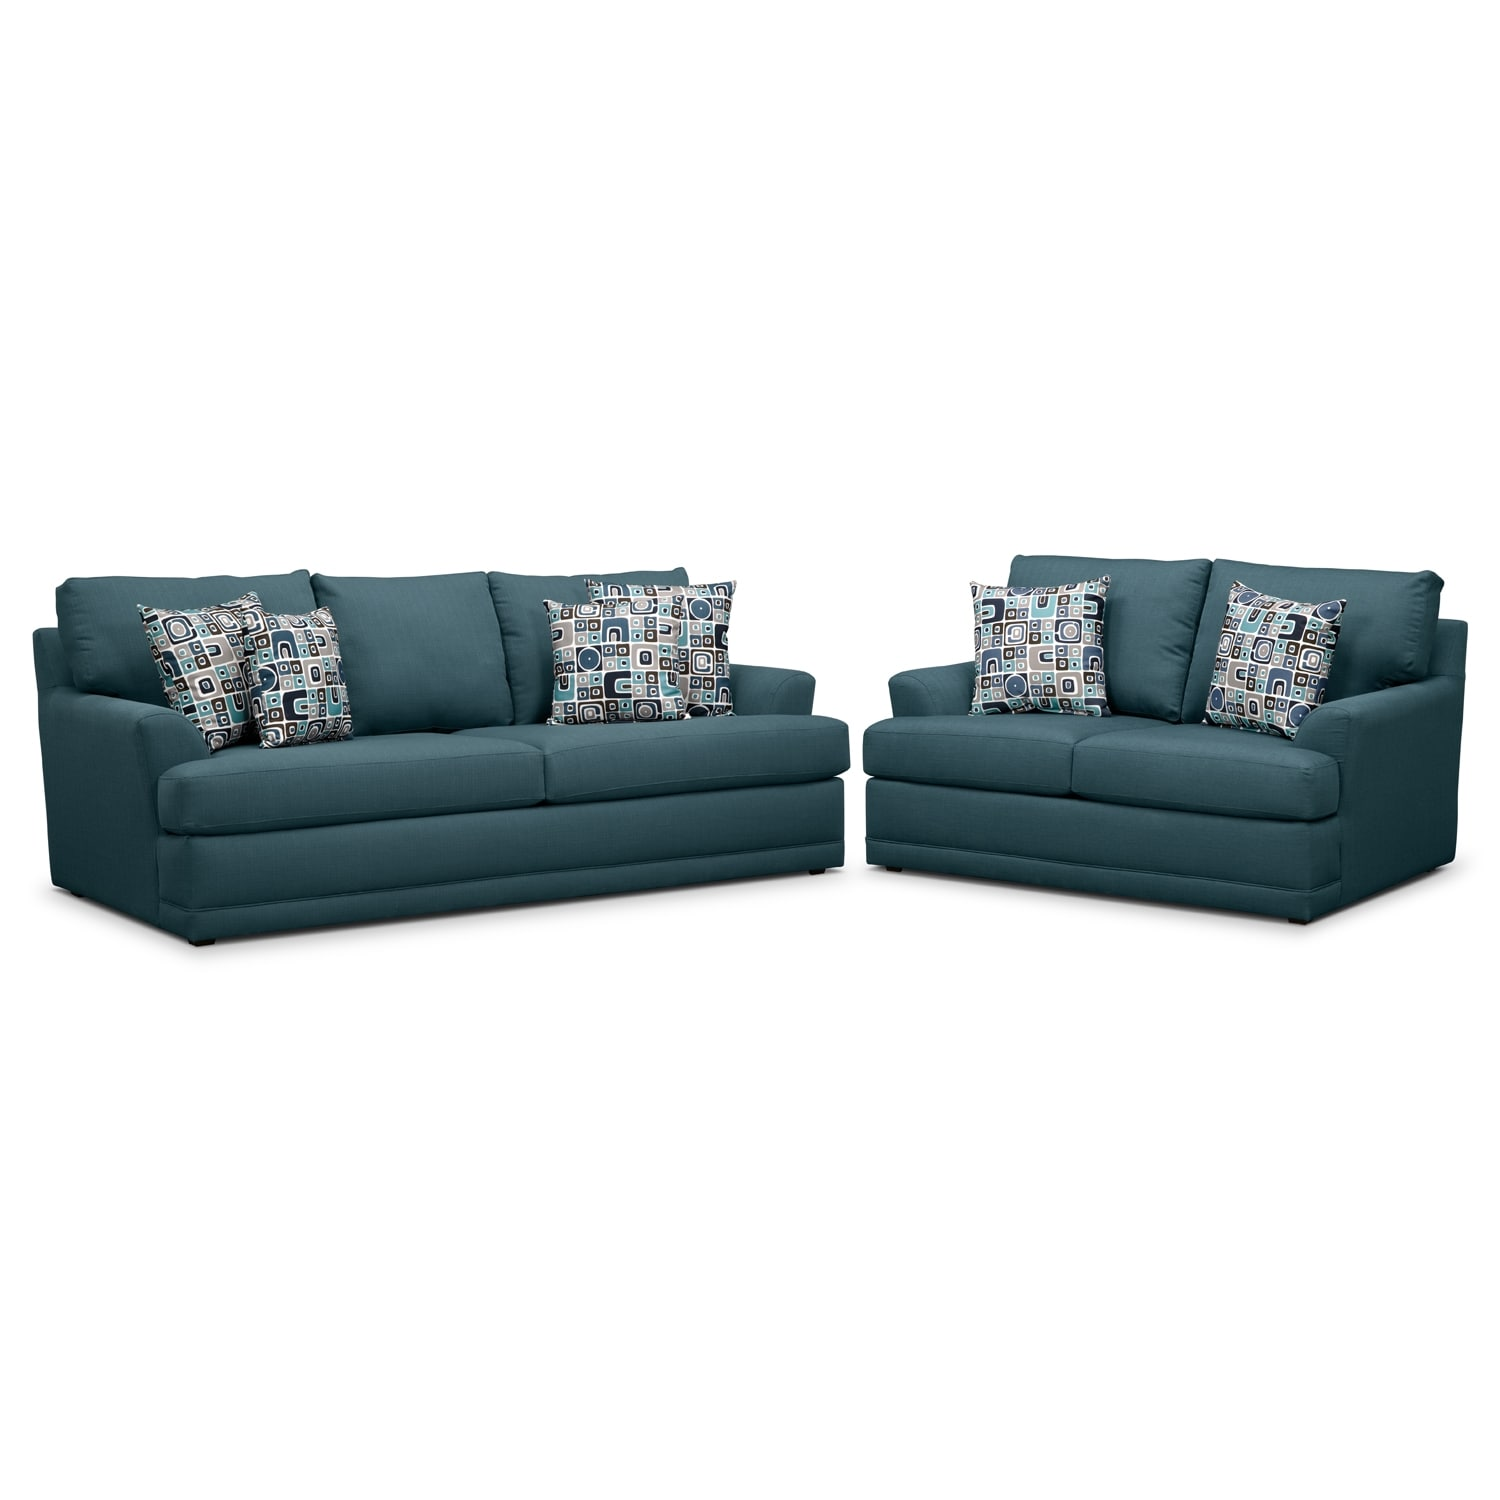 Living Room Furniture - Kismet Queen Innerspring Sleeper Sofa and Loveseat Set - Teal